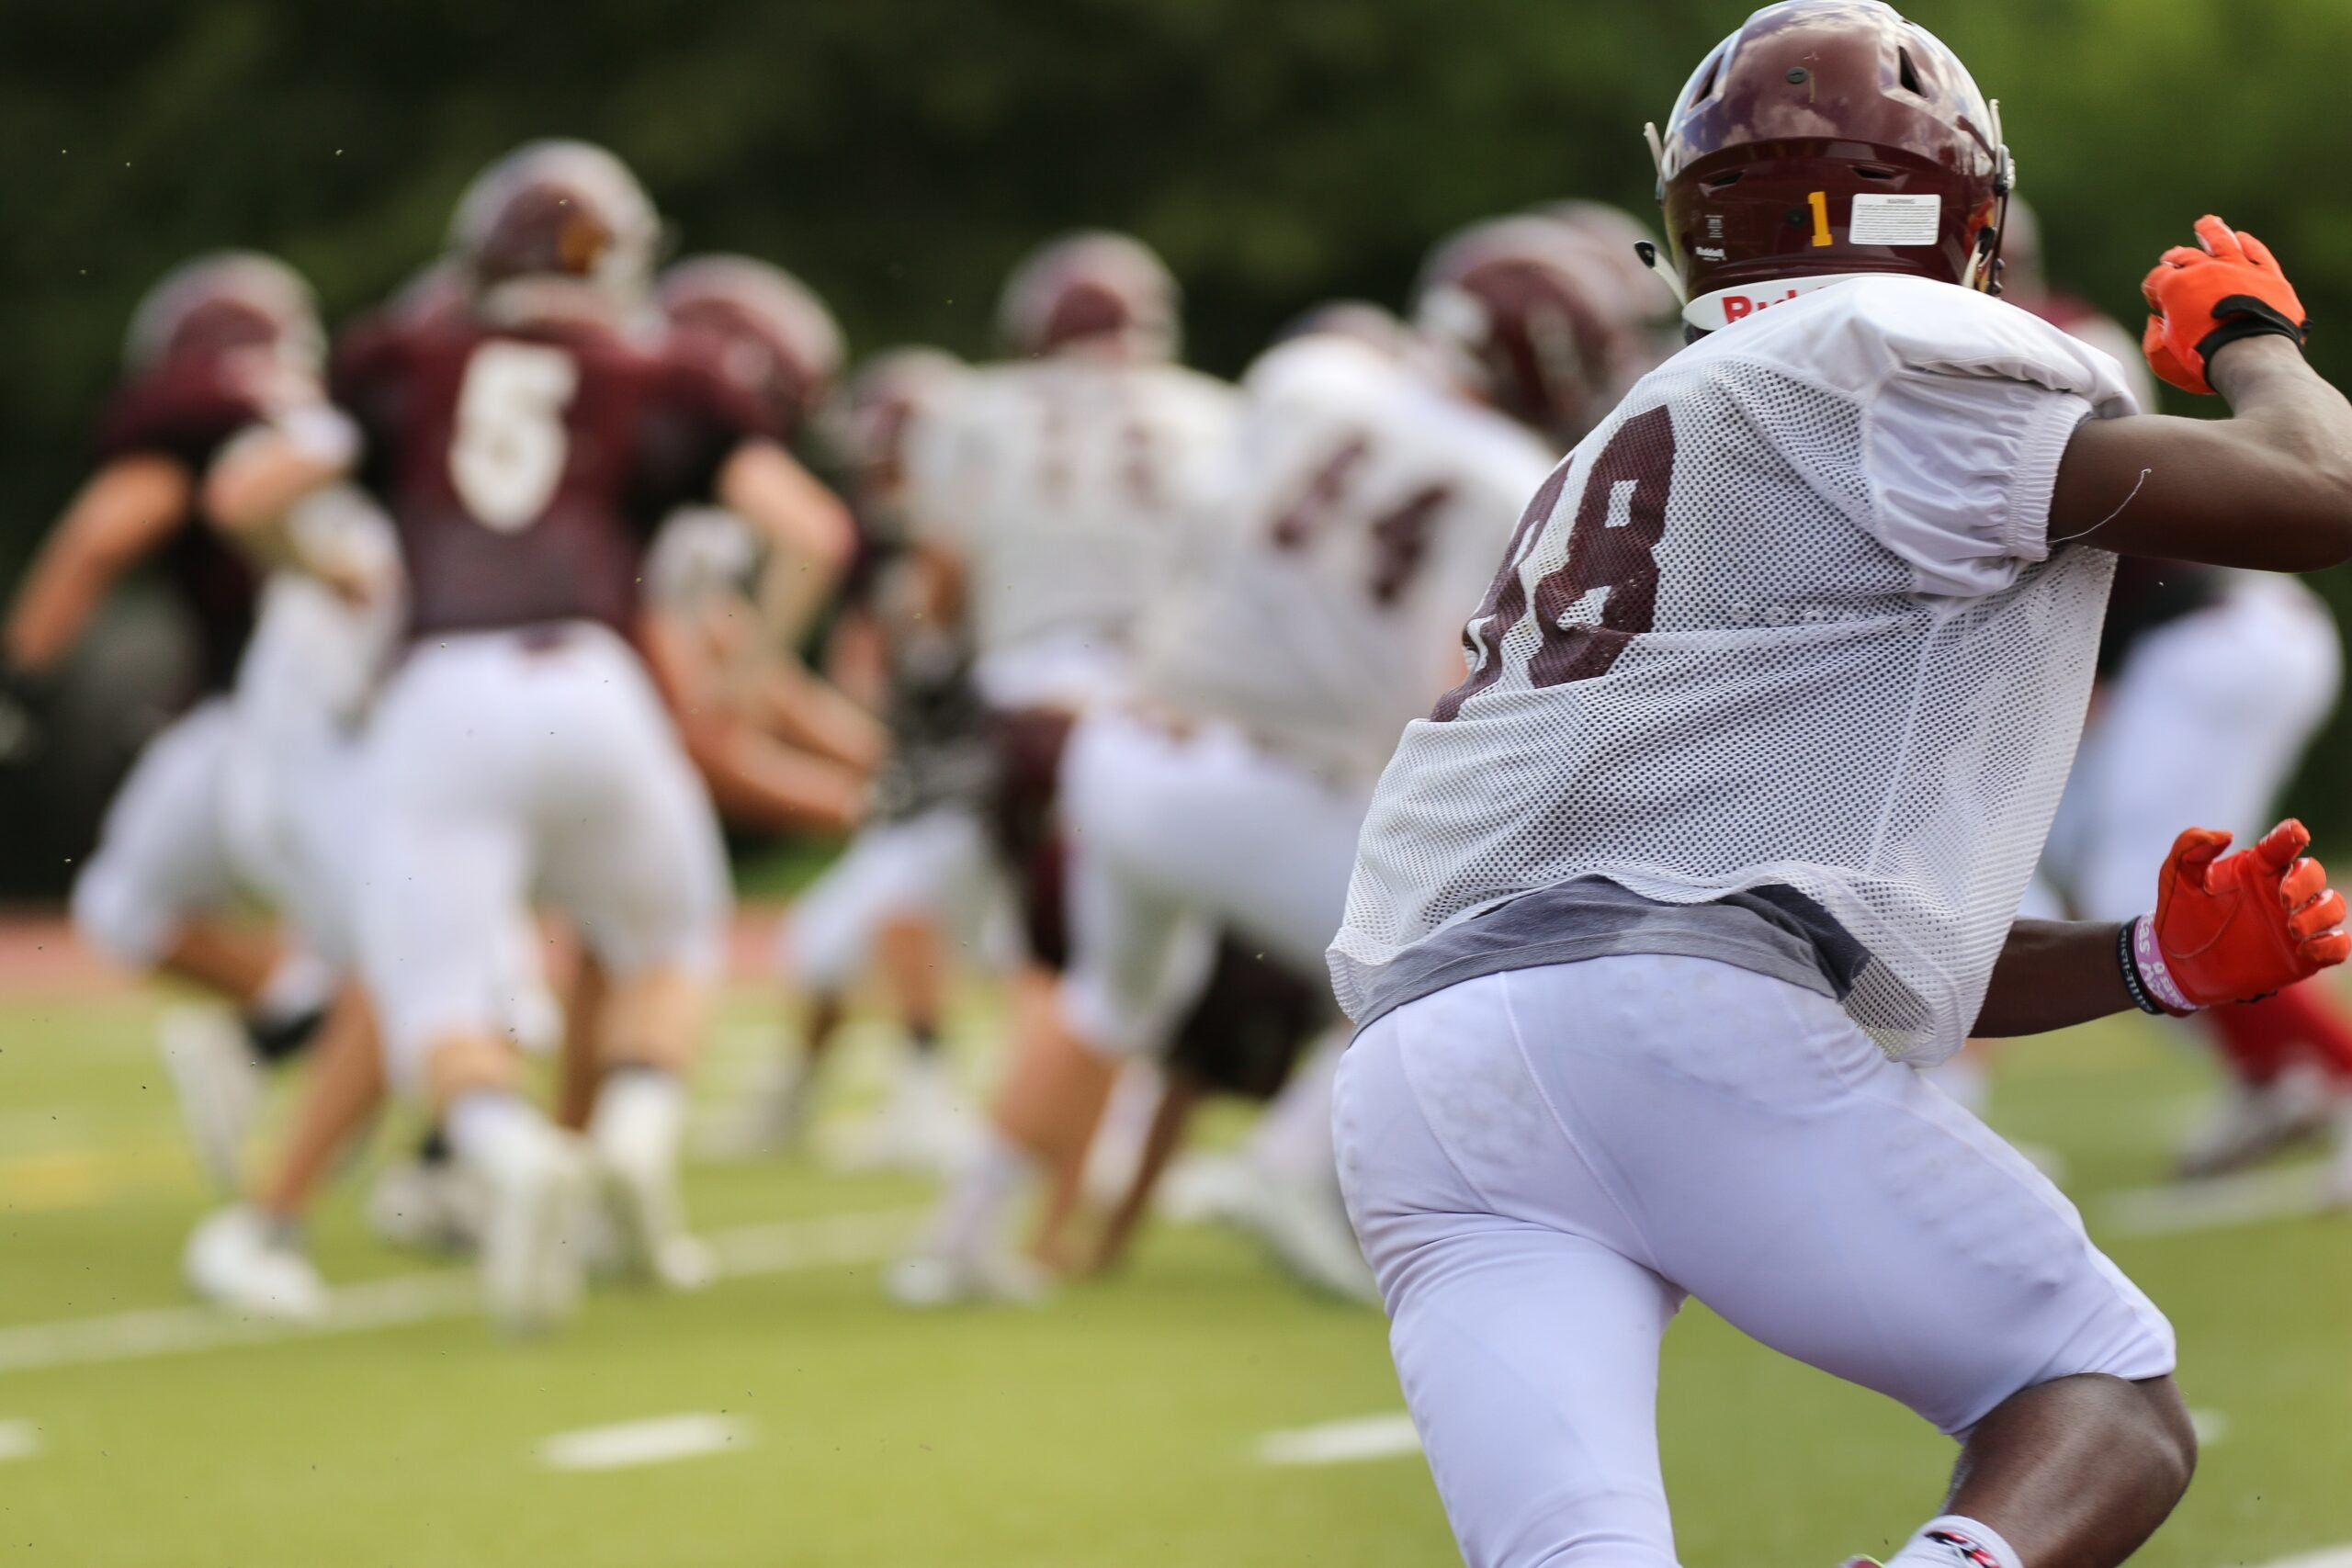 Football helmets don't prevent concussions. What can?